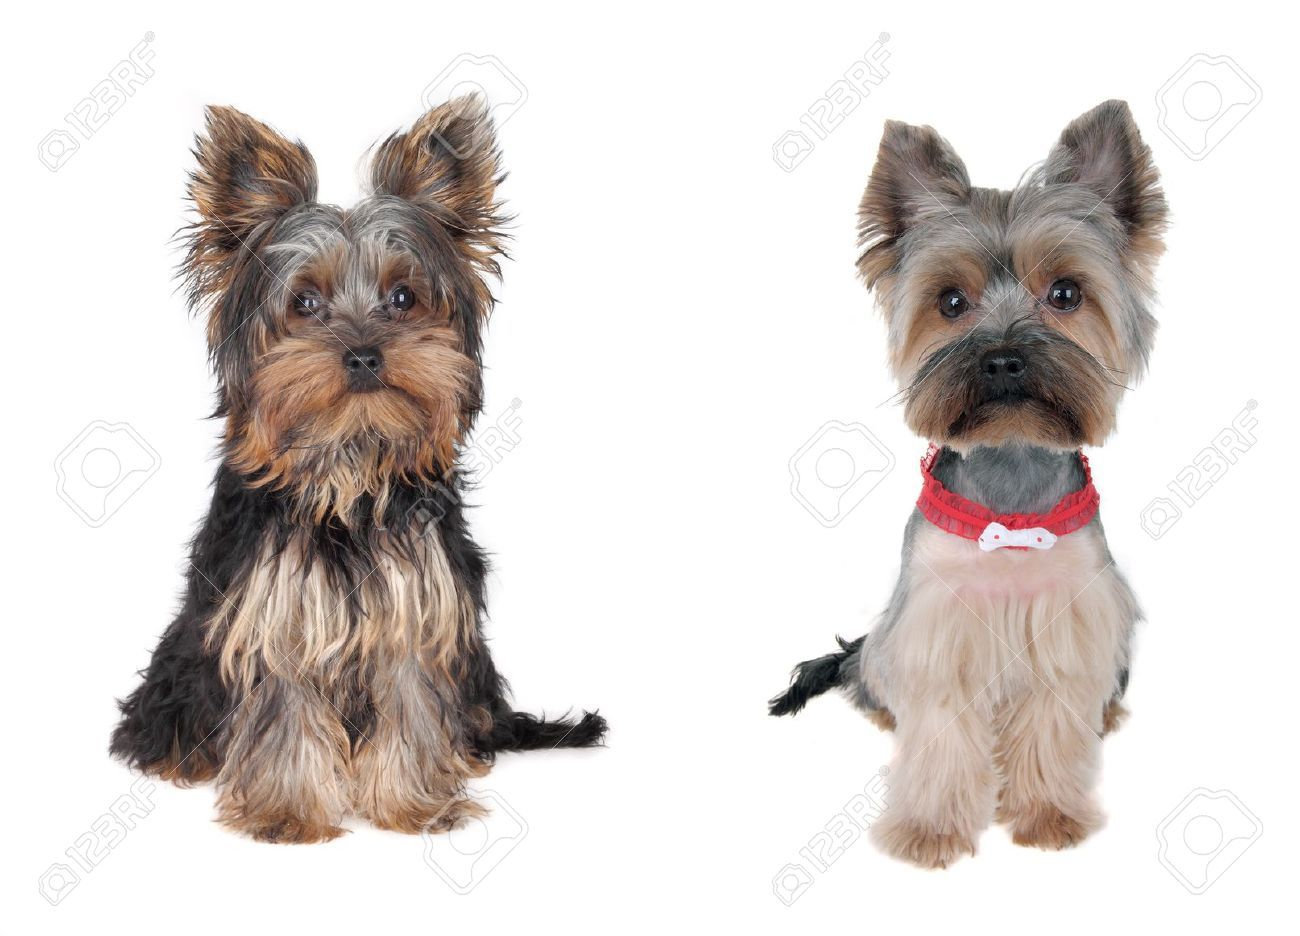 Grooming Dog Stock Photos Images, Royalty Free Grooming Dog Images ...